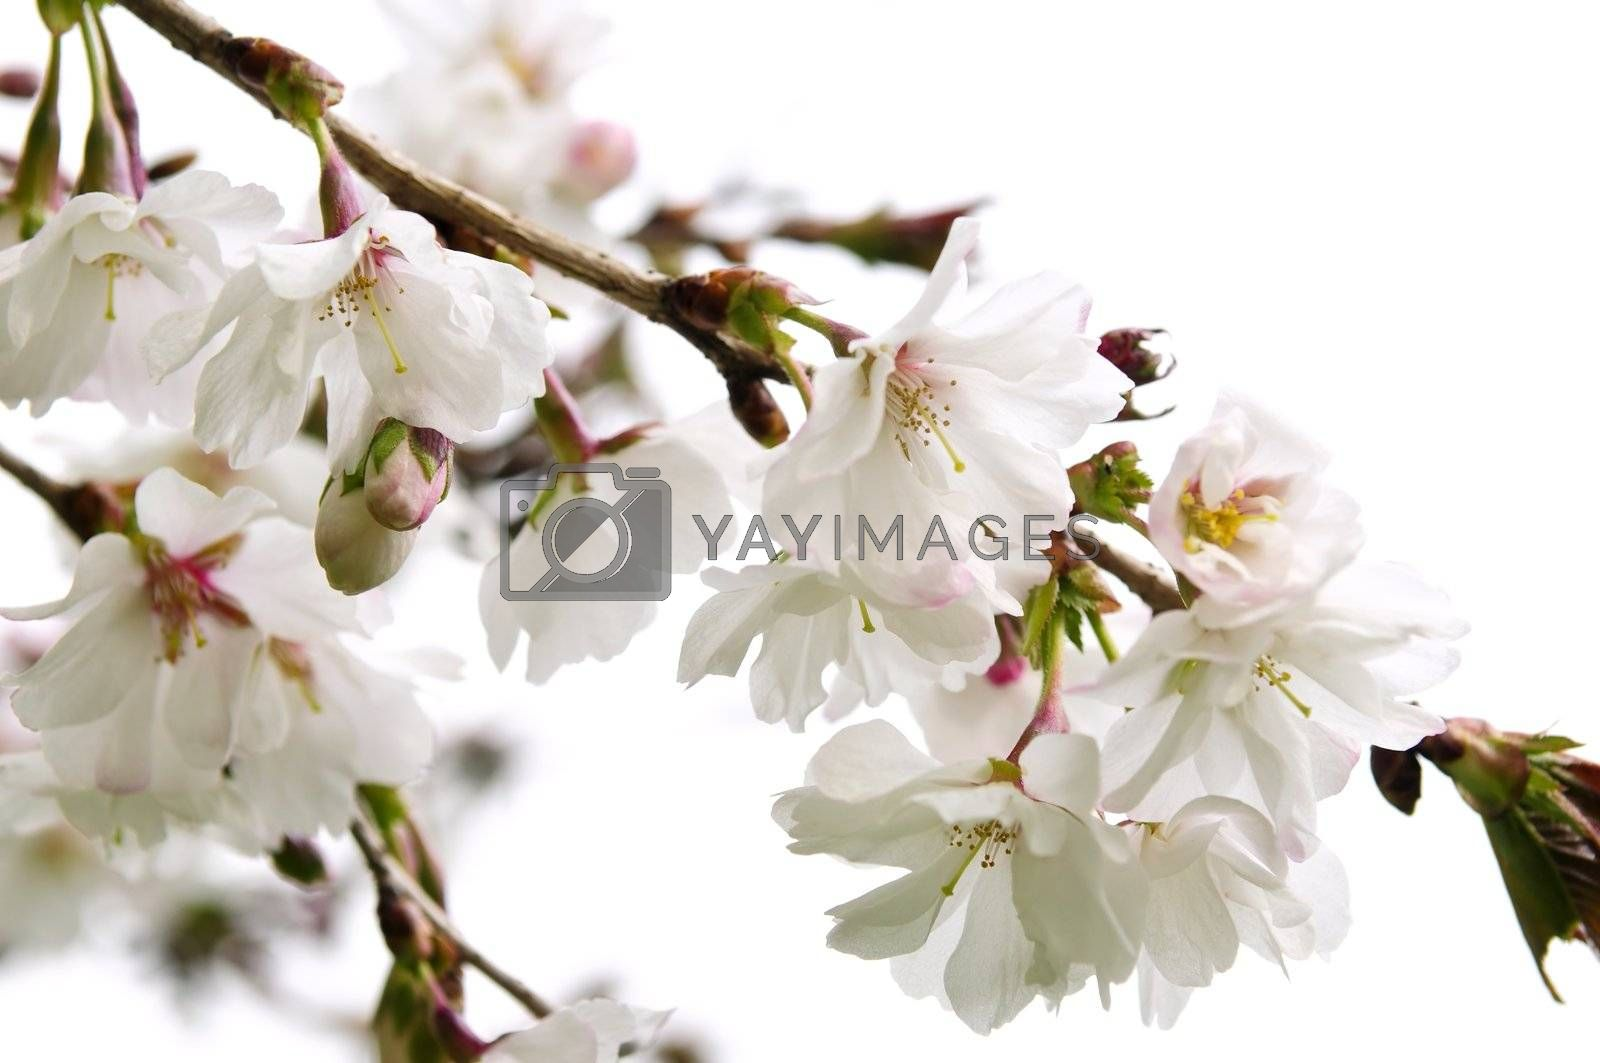 Royalty free image of Oriental cherry blossom by elenathewise